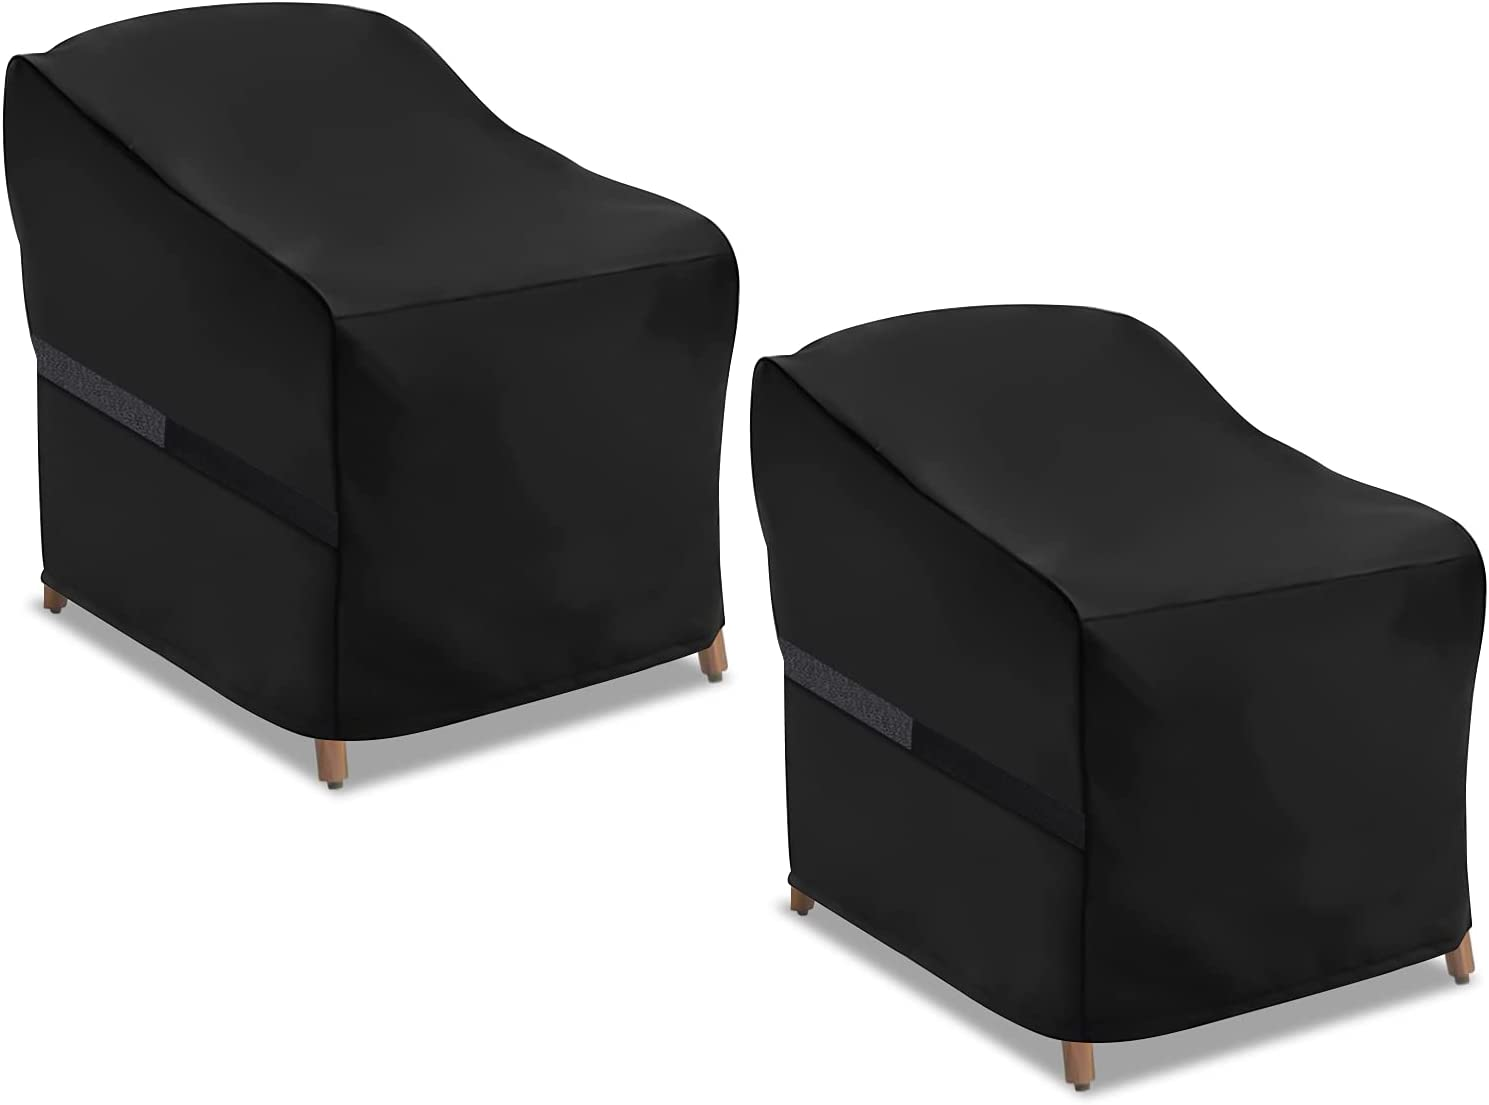 NASUM Patio Seat Covers, 2 Pack Patio Chair Coves, Waterproof and Heavy Duty Lounge Deep Outdoor Seat Covers, Outdoor Lawn Patio Furniture Covers,32''Lx37''Dx36''H